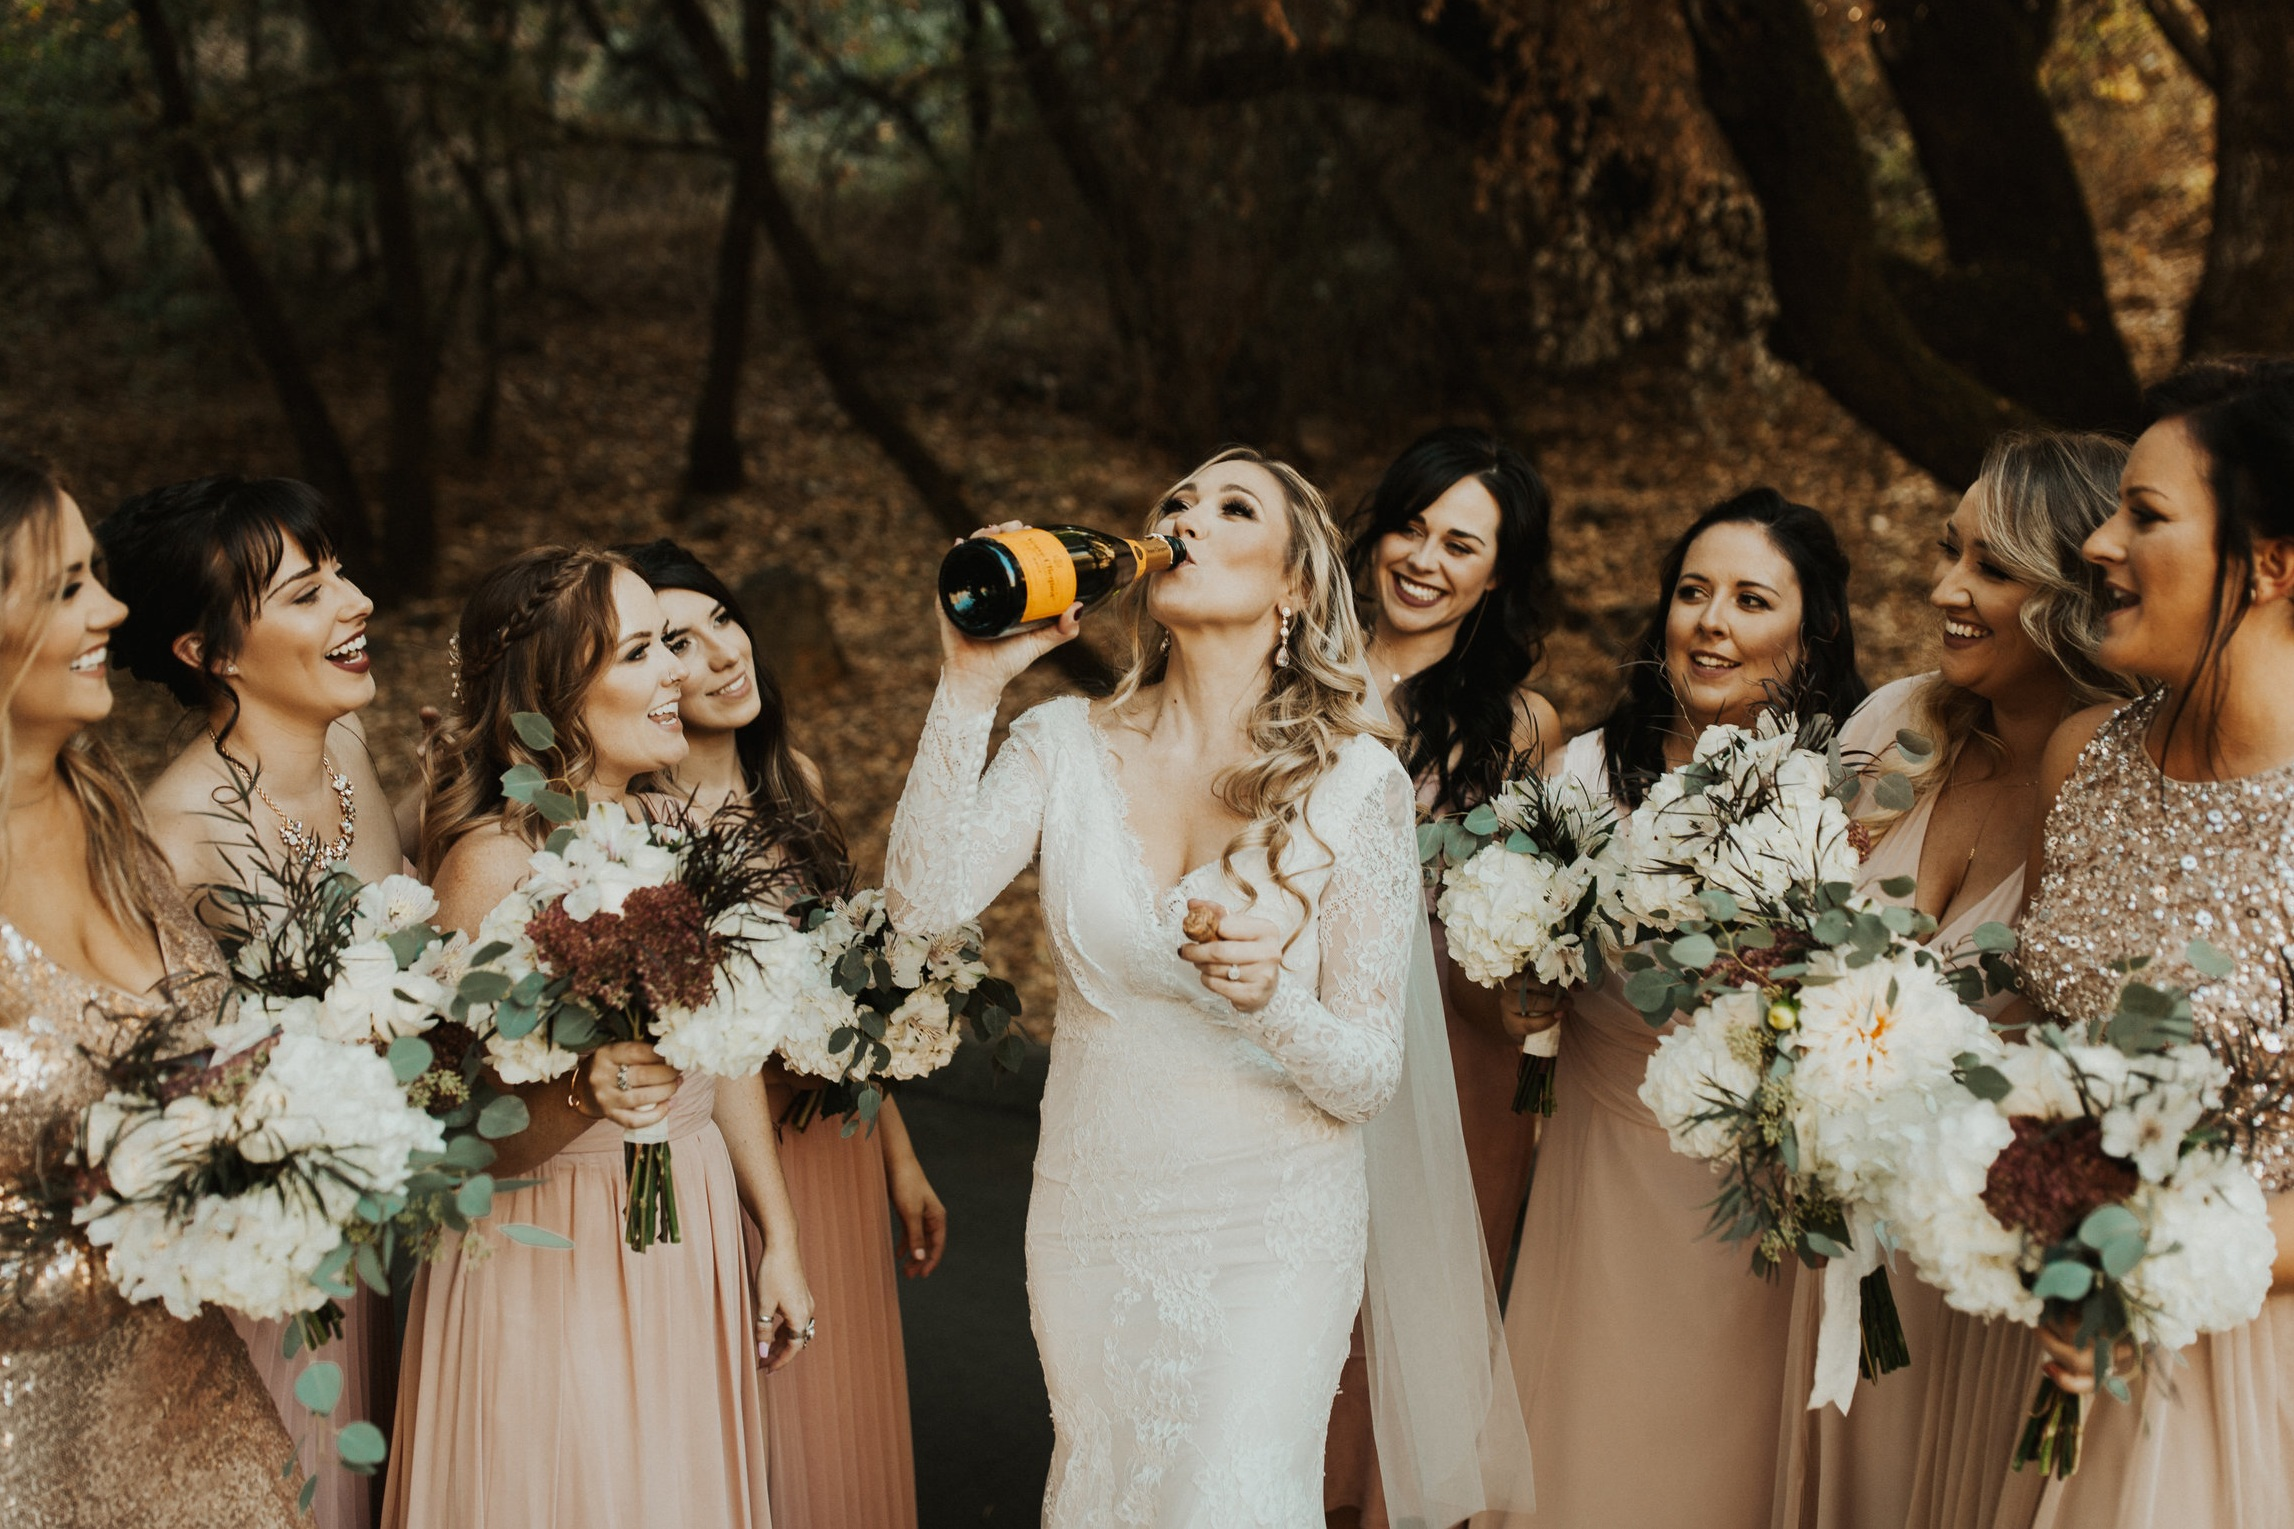 Cheers, ladies! - Wedding planning with ease, organization, clarity, and we cannot forget fun! Cheers to sipping mimosas while you enjoy the beauty of wedding planning.